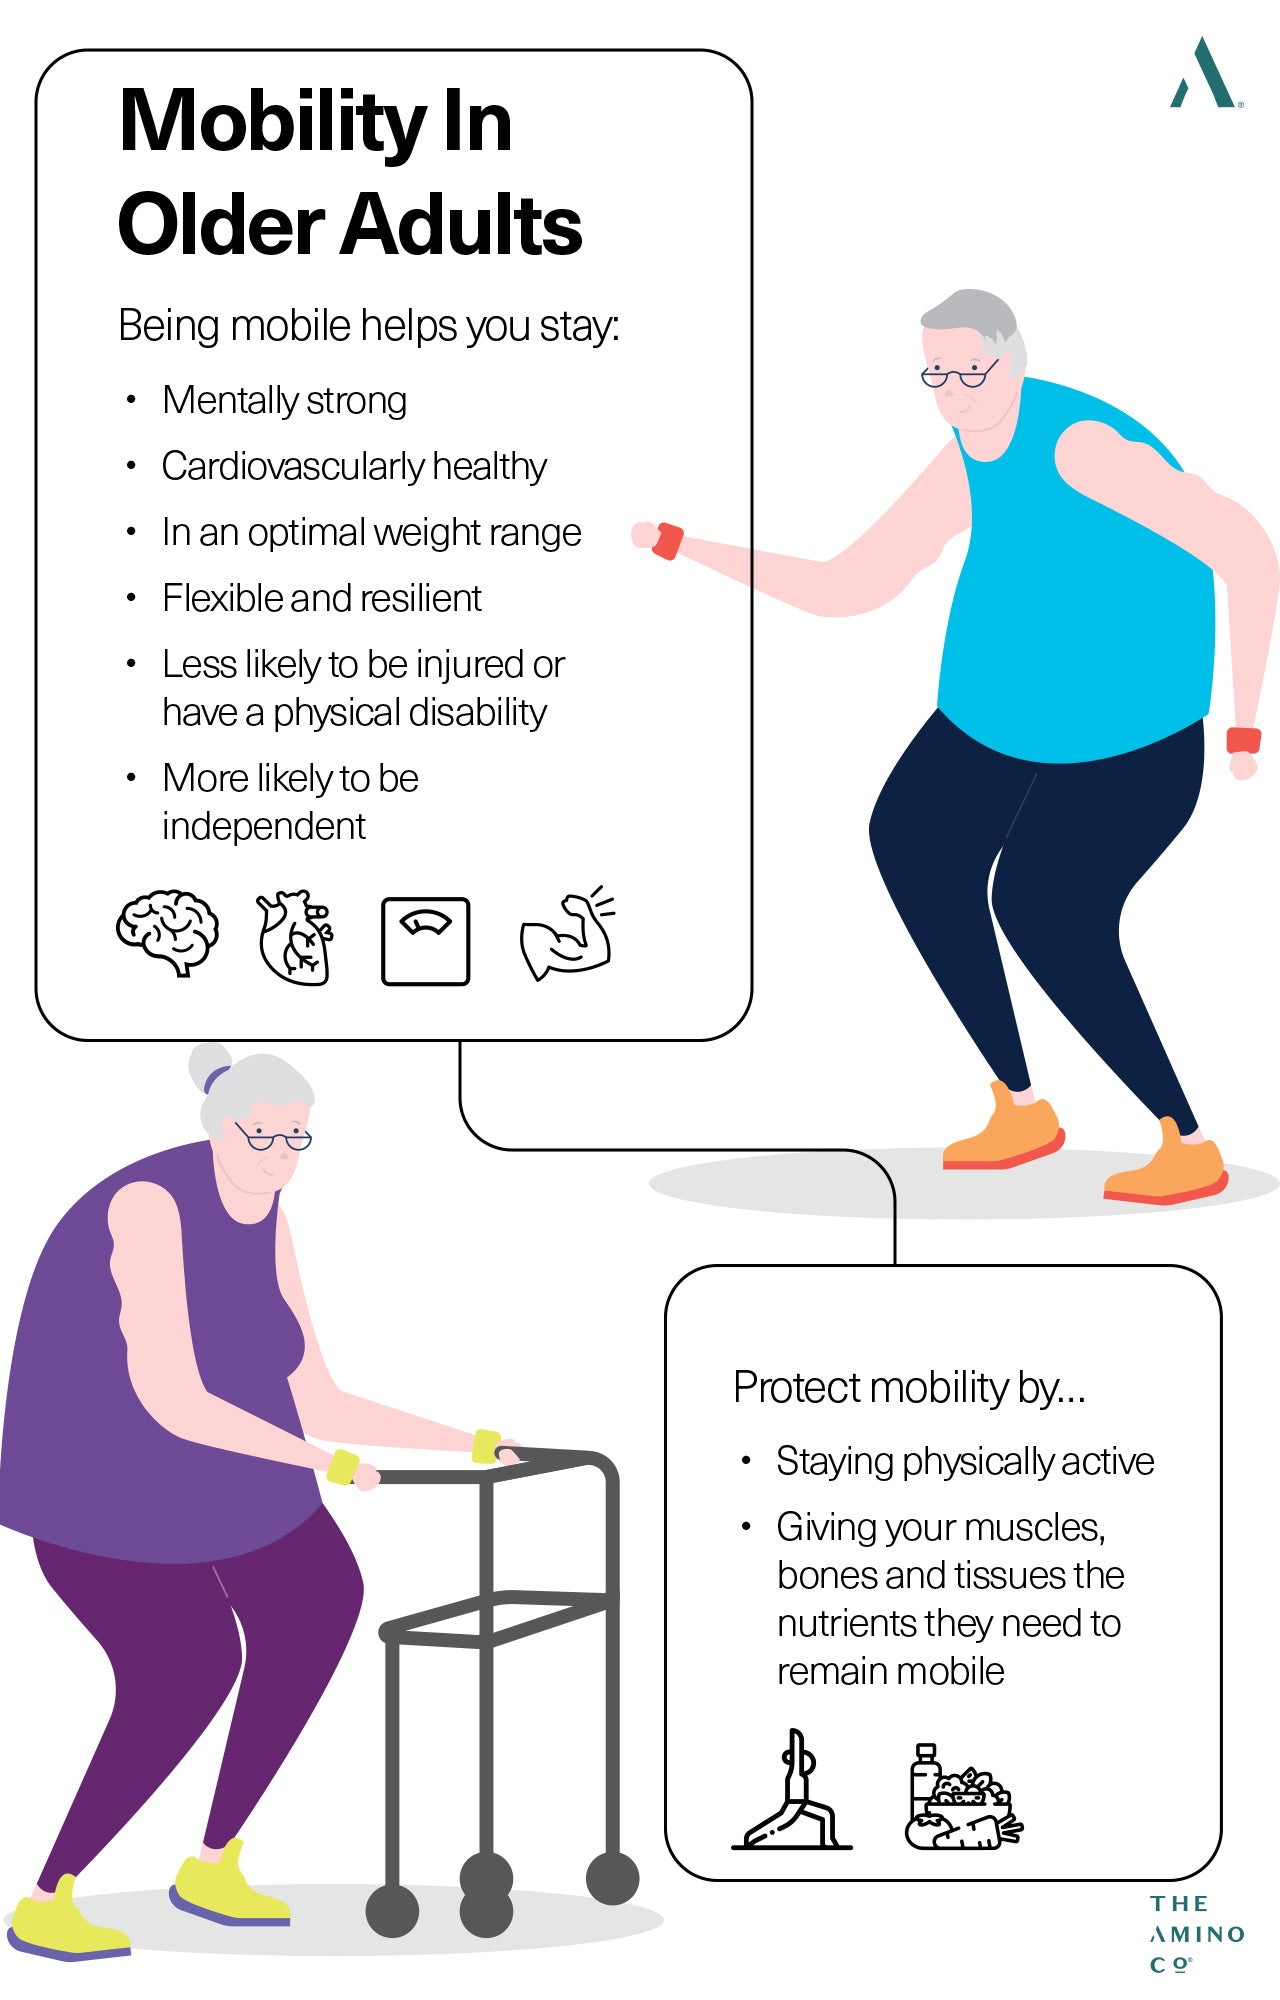 Tips for mobility in older adults